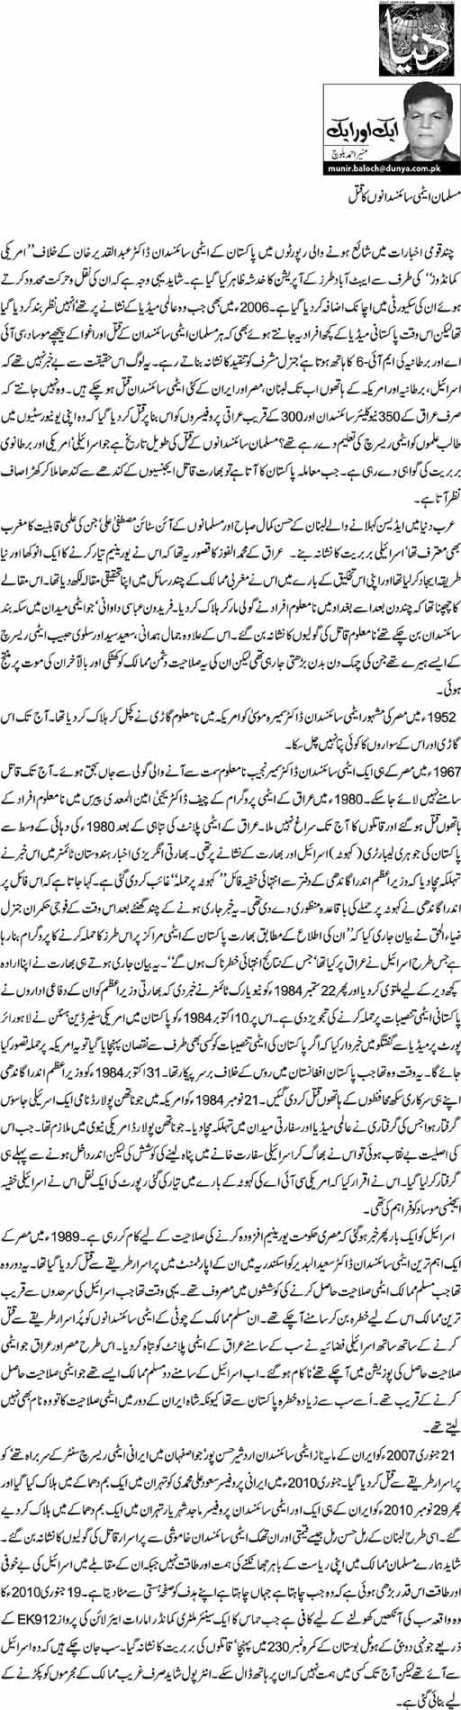 Musalman Atomic Sciencedanun Ka Qatal - Munir Ahmed Baloch